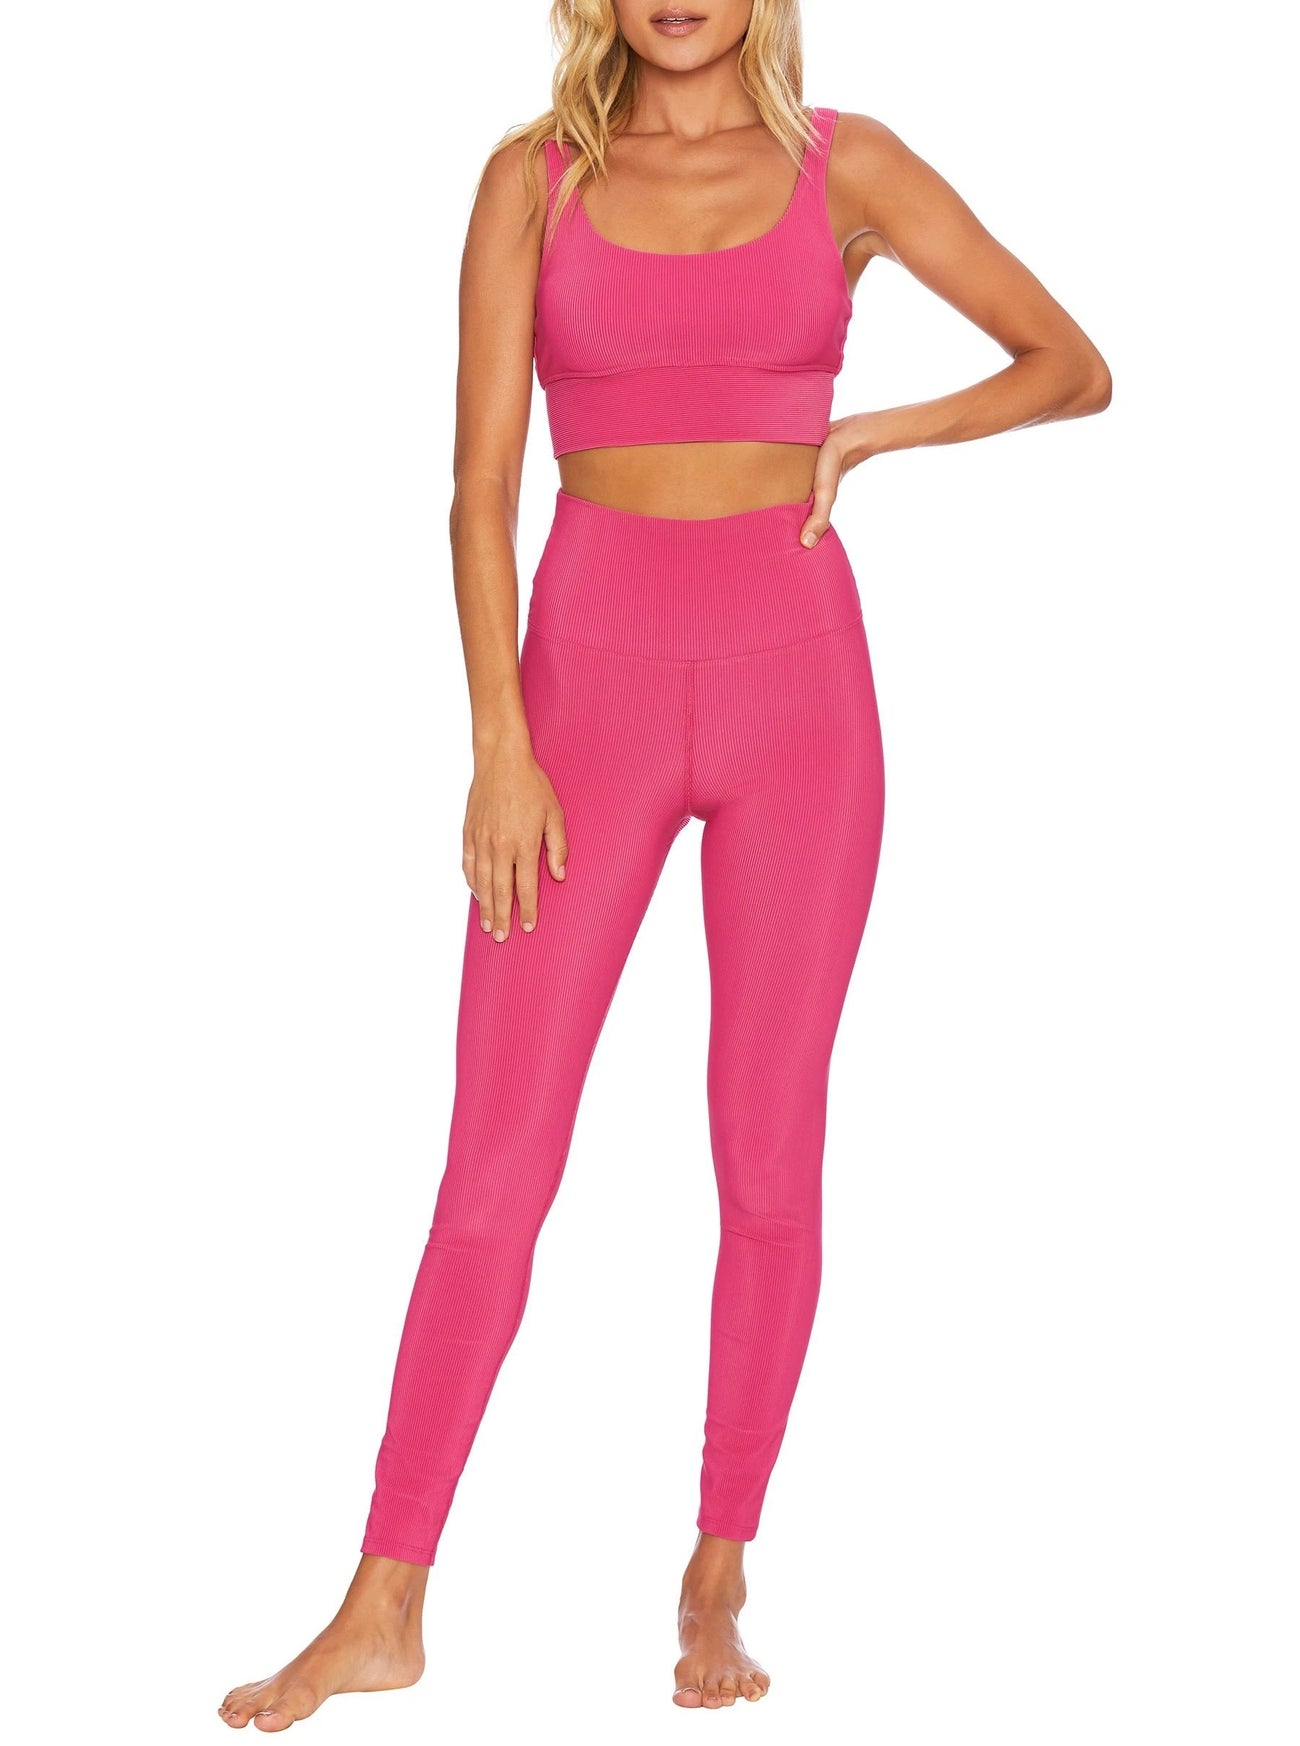 Ayla Legging in Fuchsia